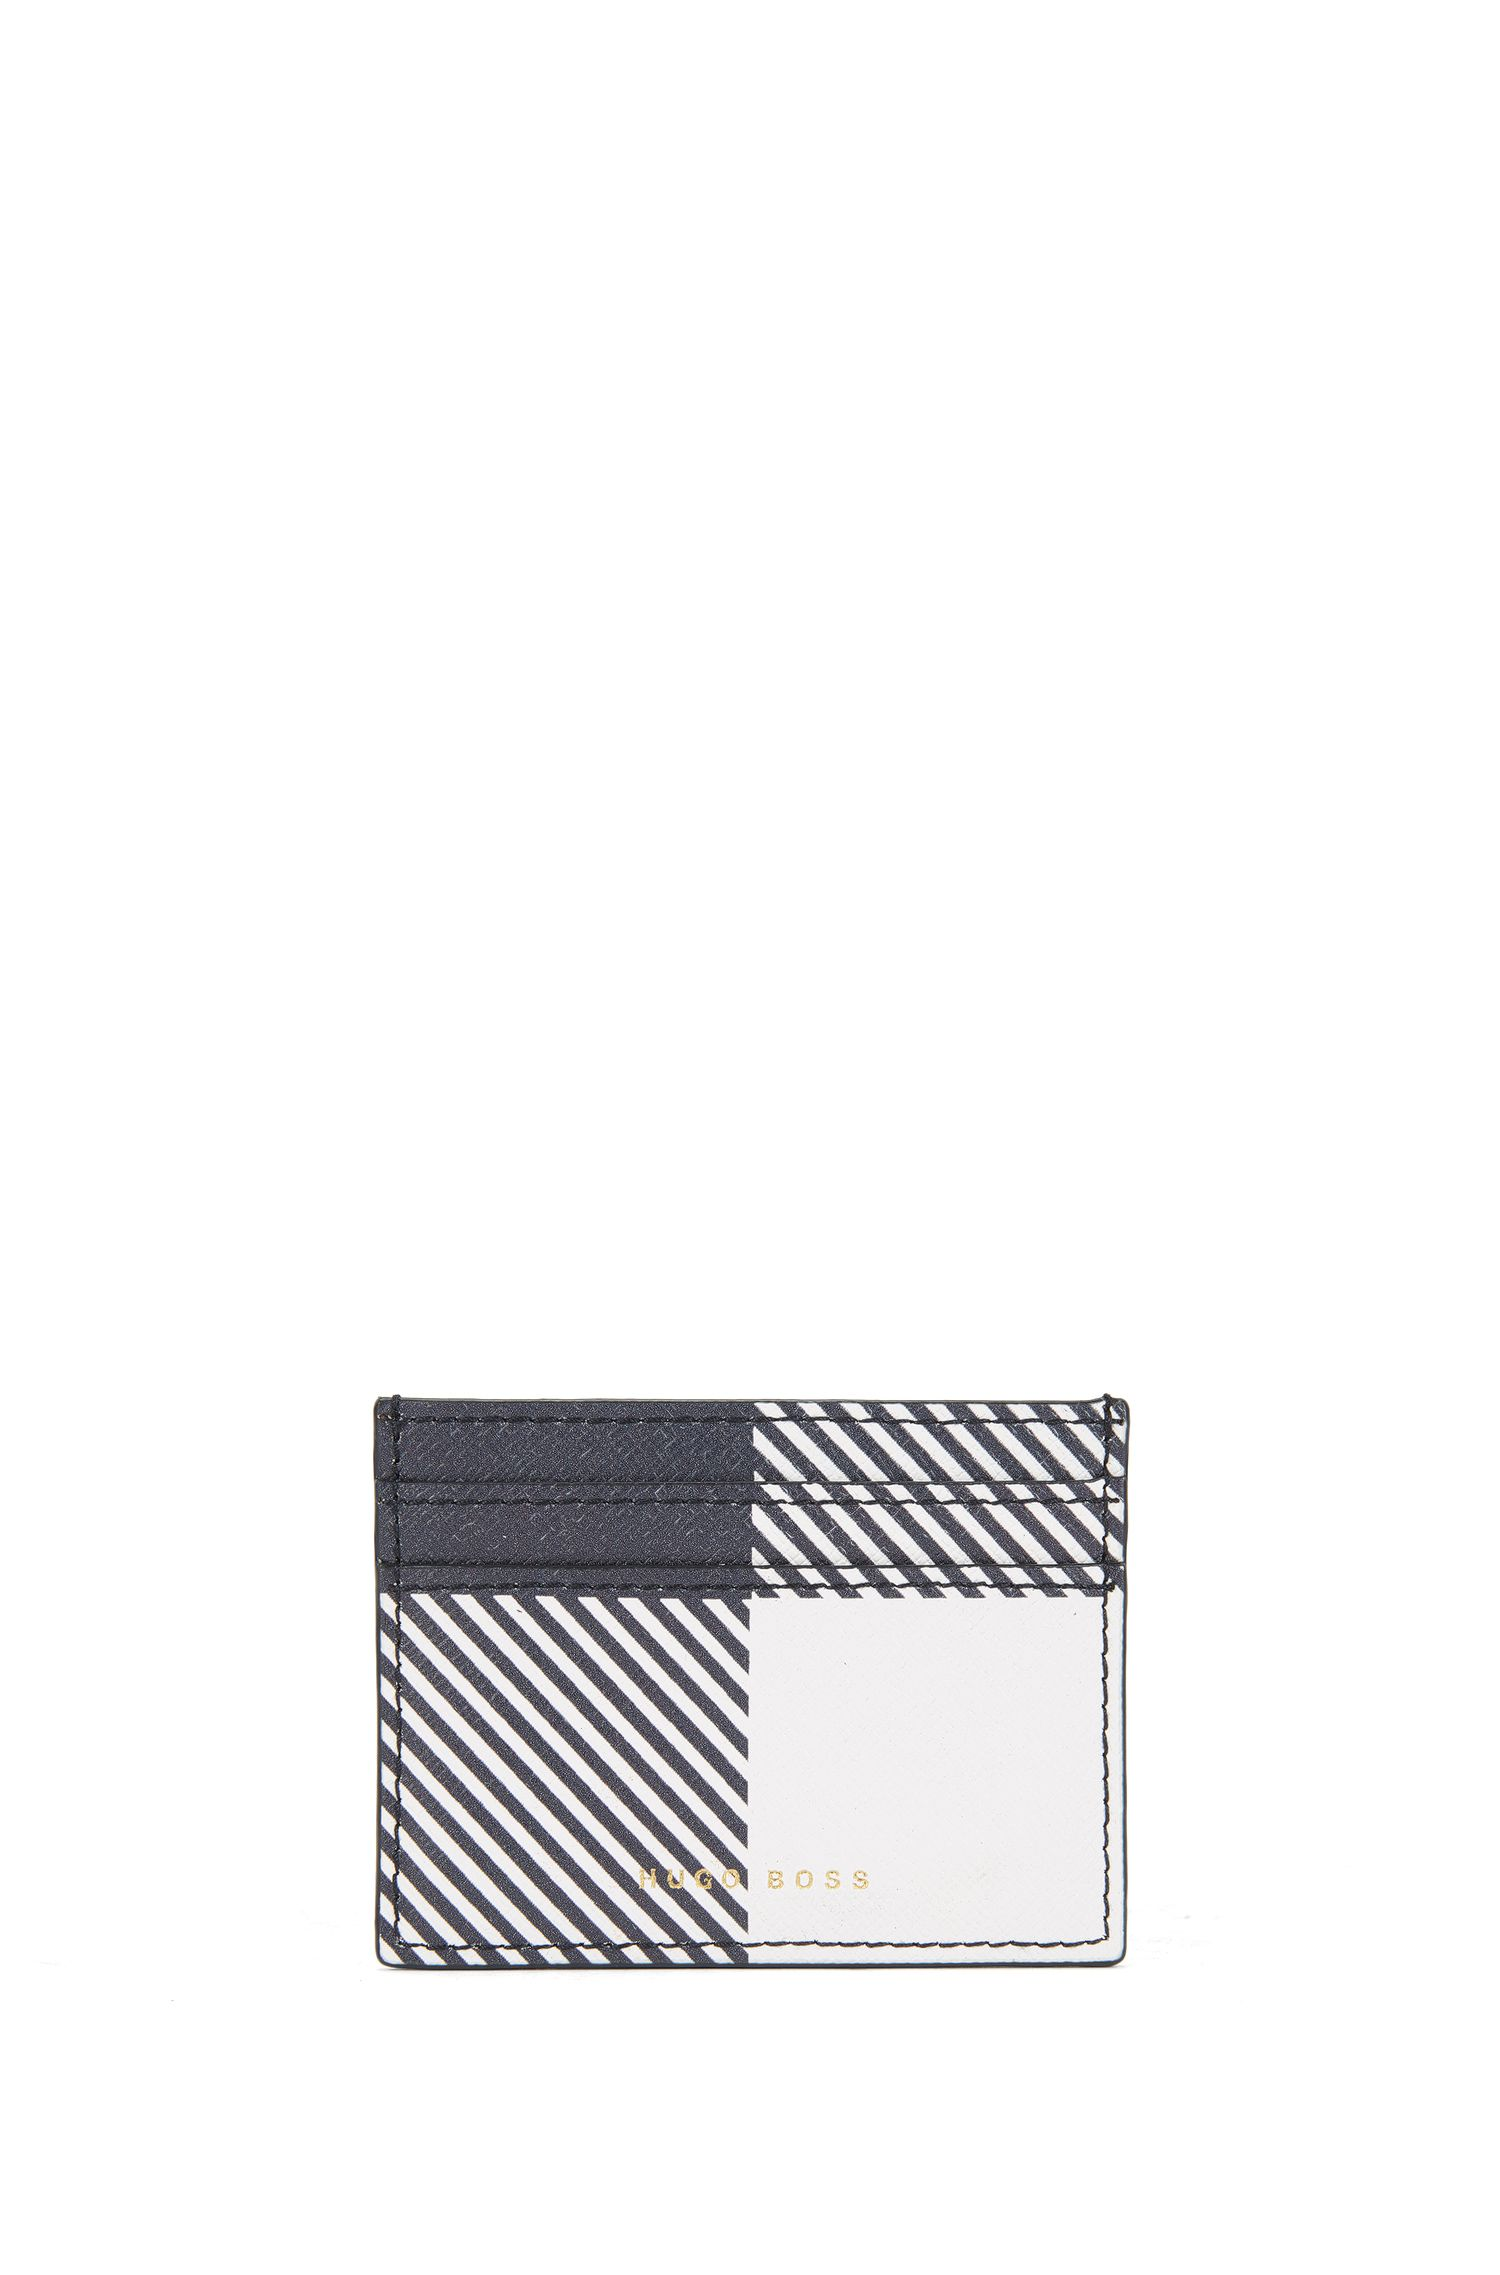 BOSS Bespoke Soft card holder in check-printed leather